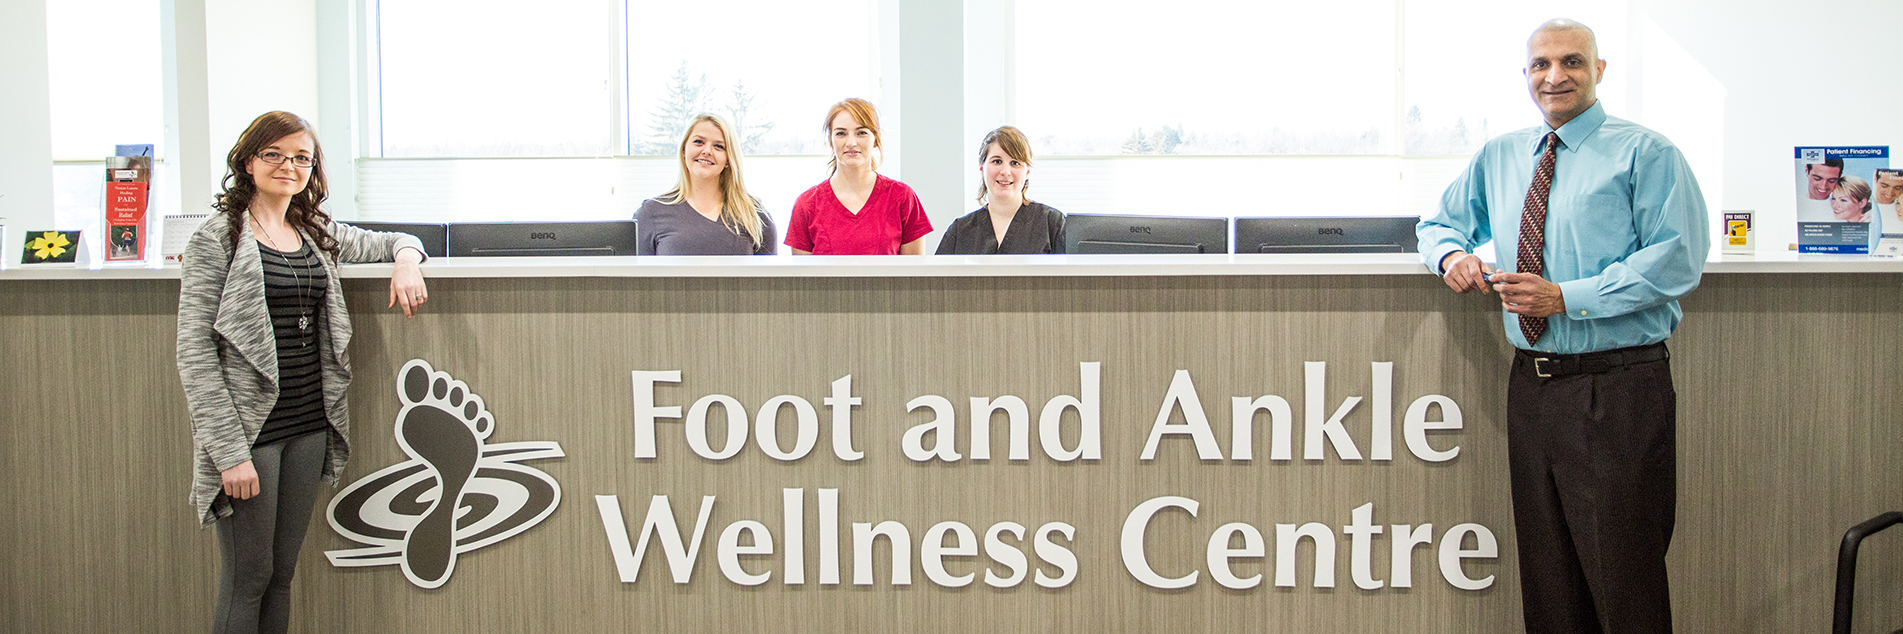 Group photo of the staff at the Foot and Ankle Wellness Centre